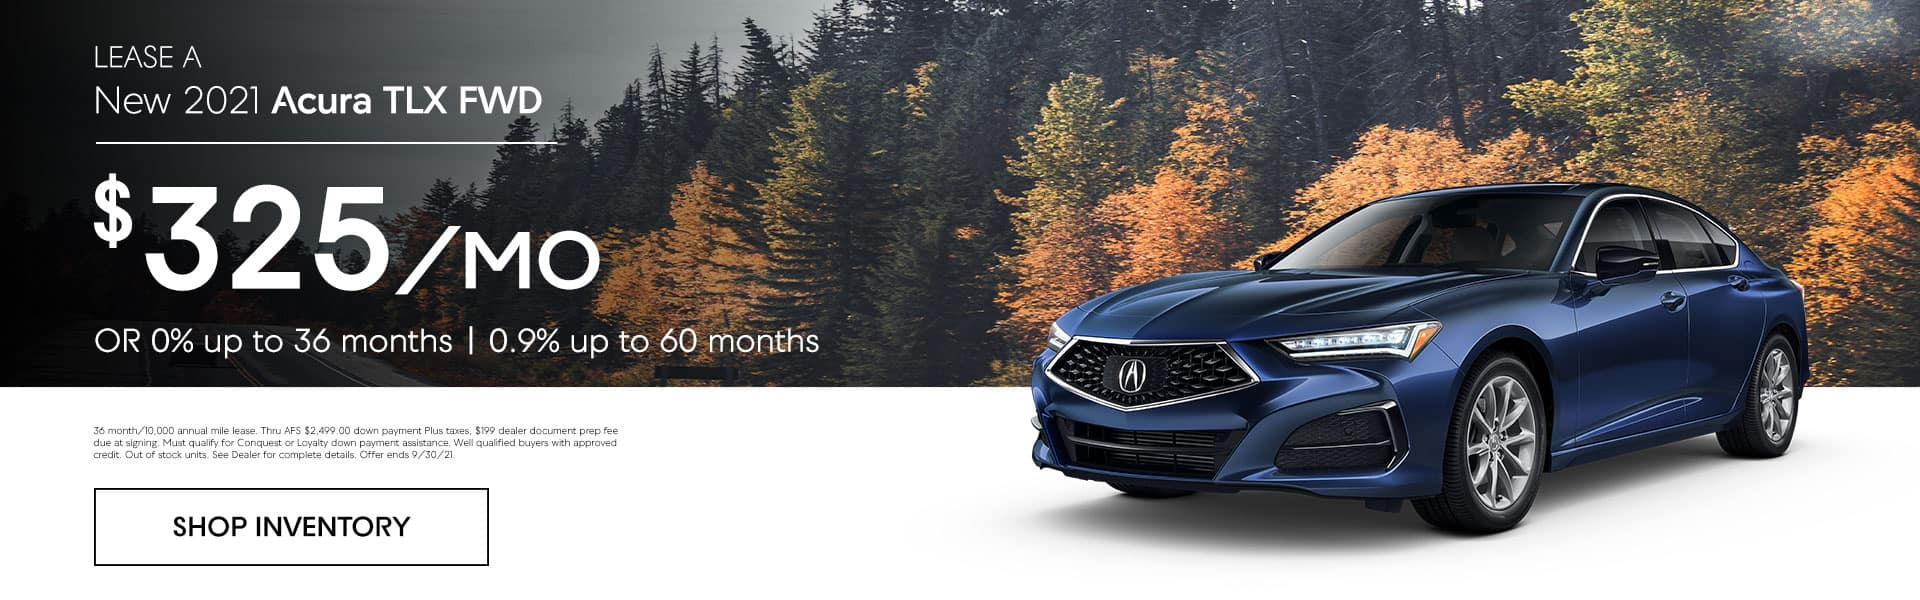 New 2021 Acura TLX FWD